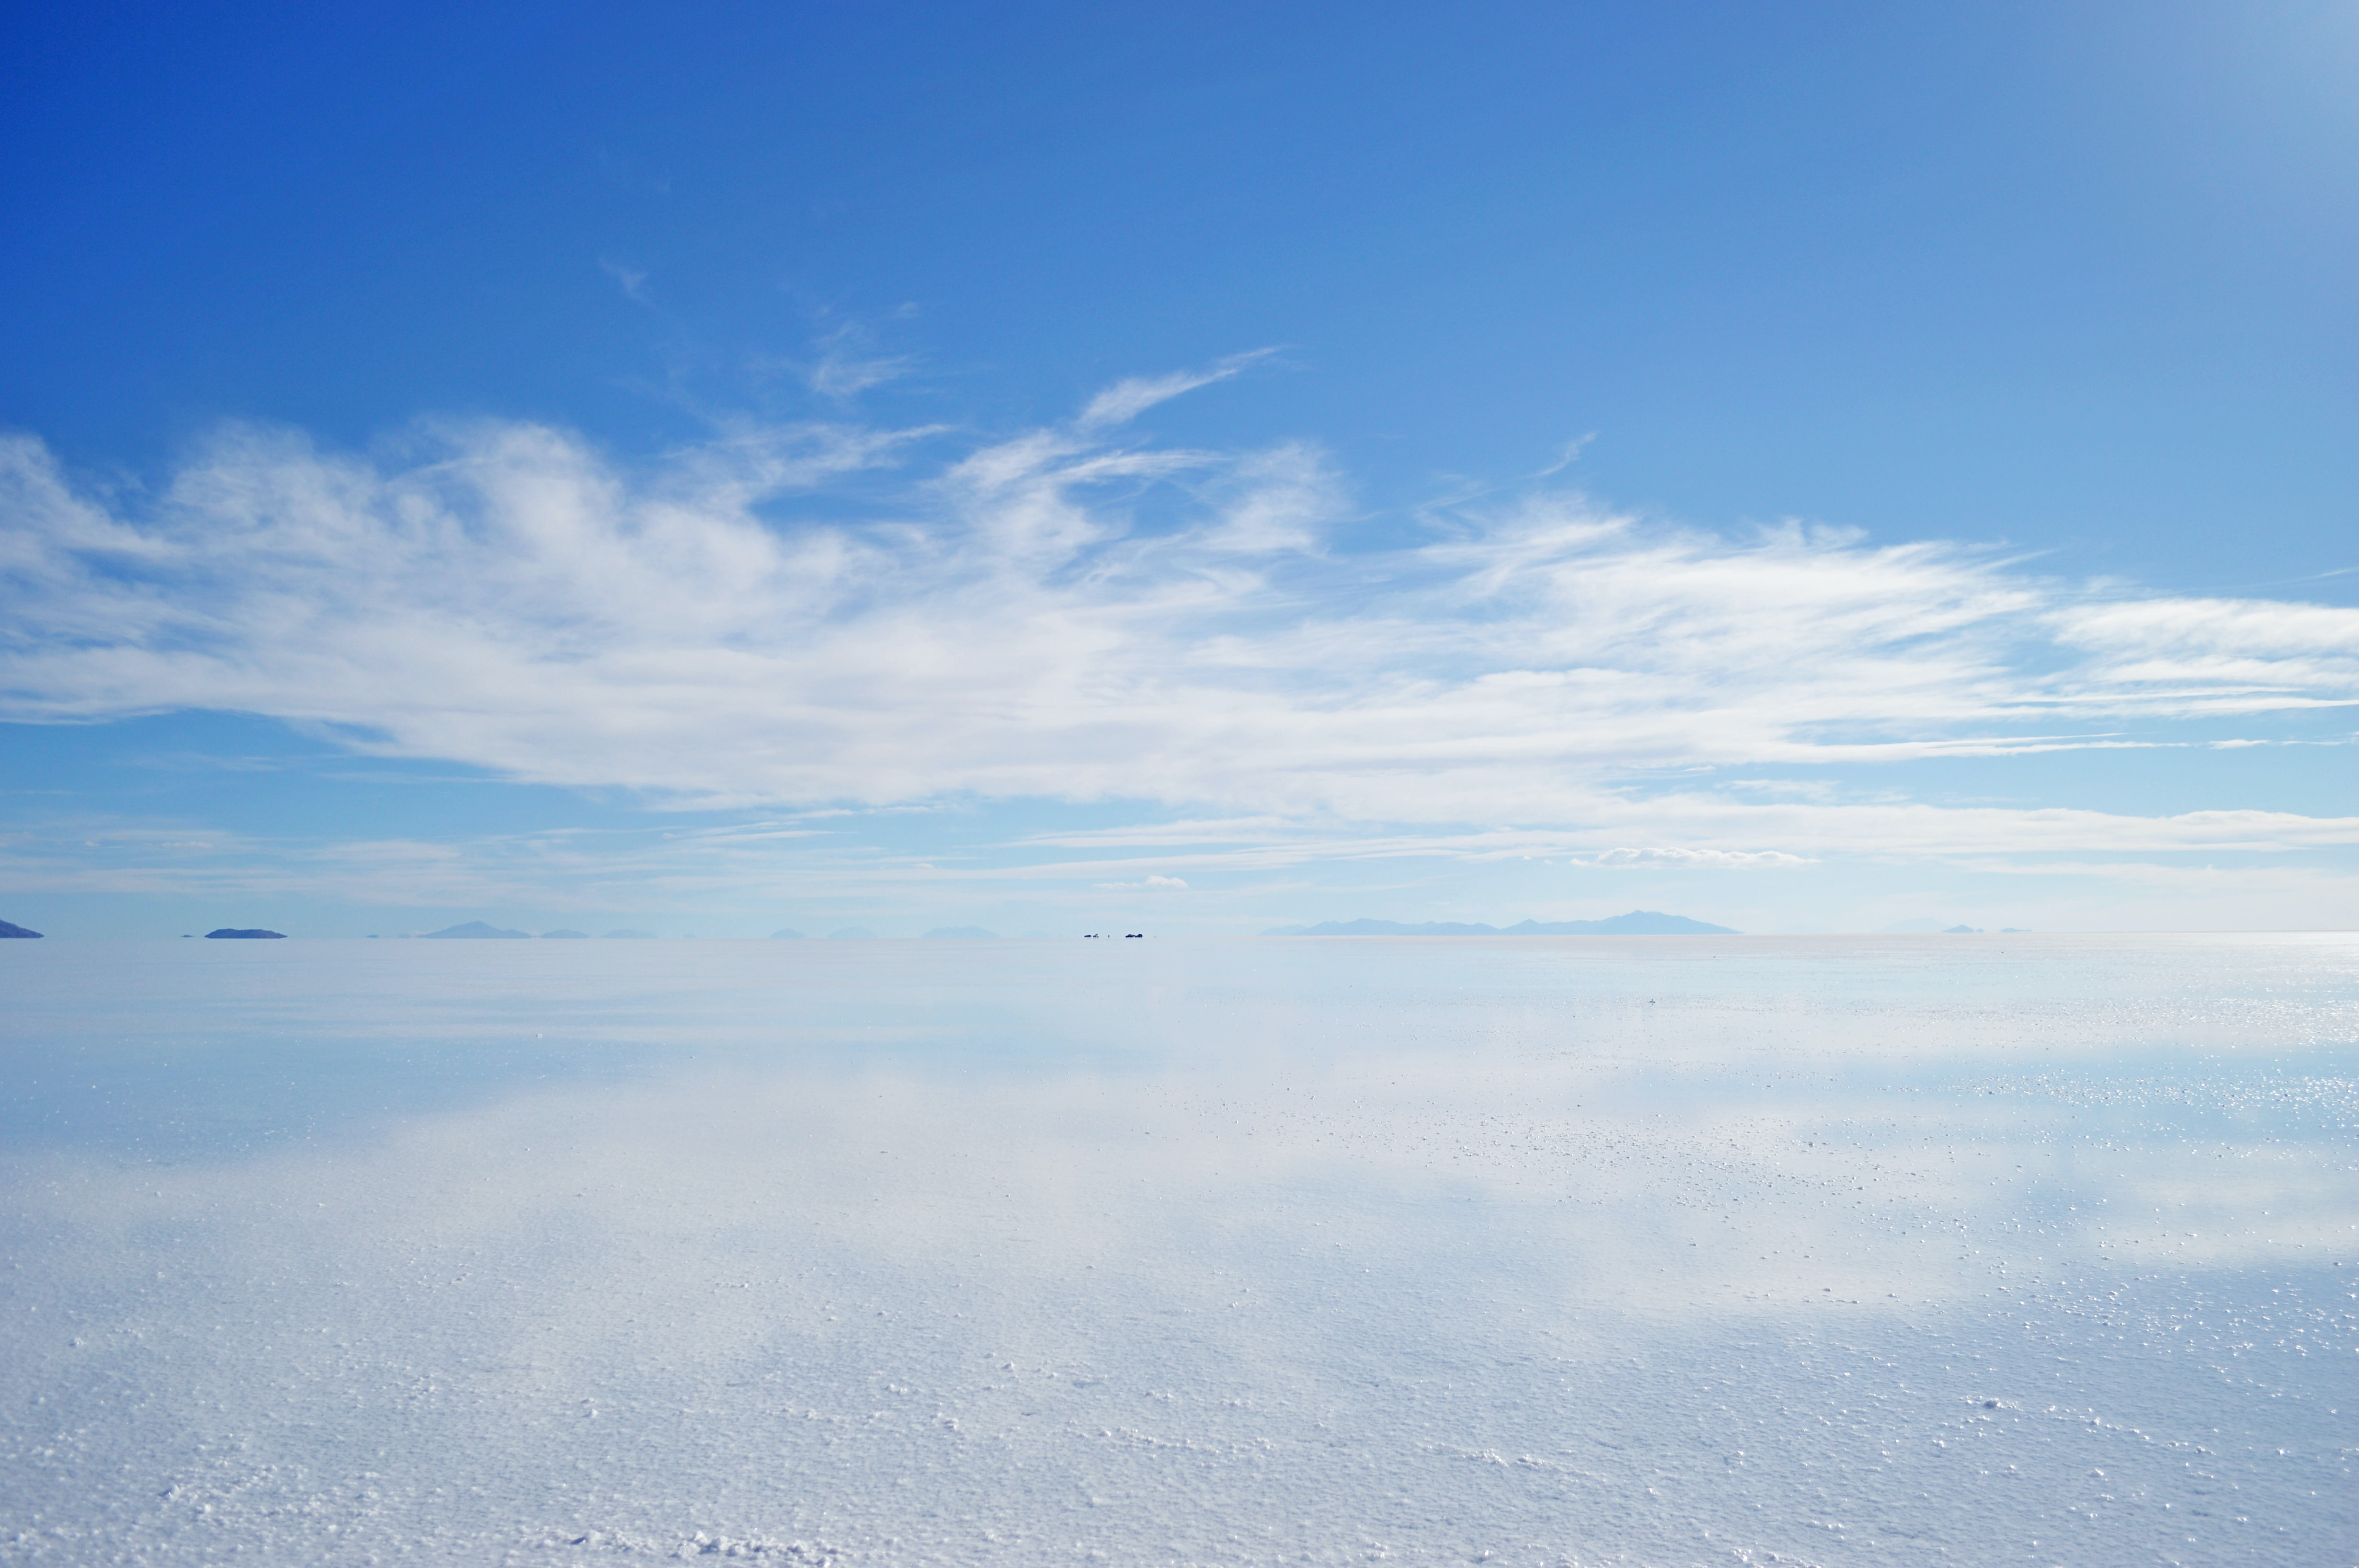 White sand blends into the horizon of a cloudy sky in a desert in Uyuni